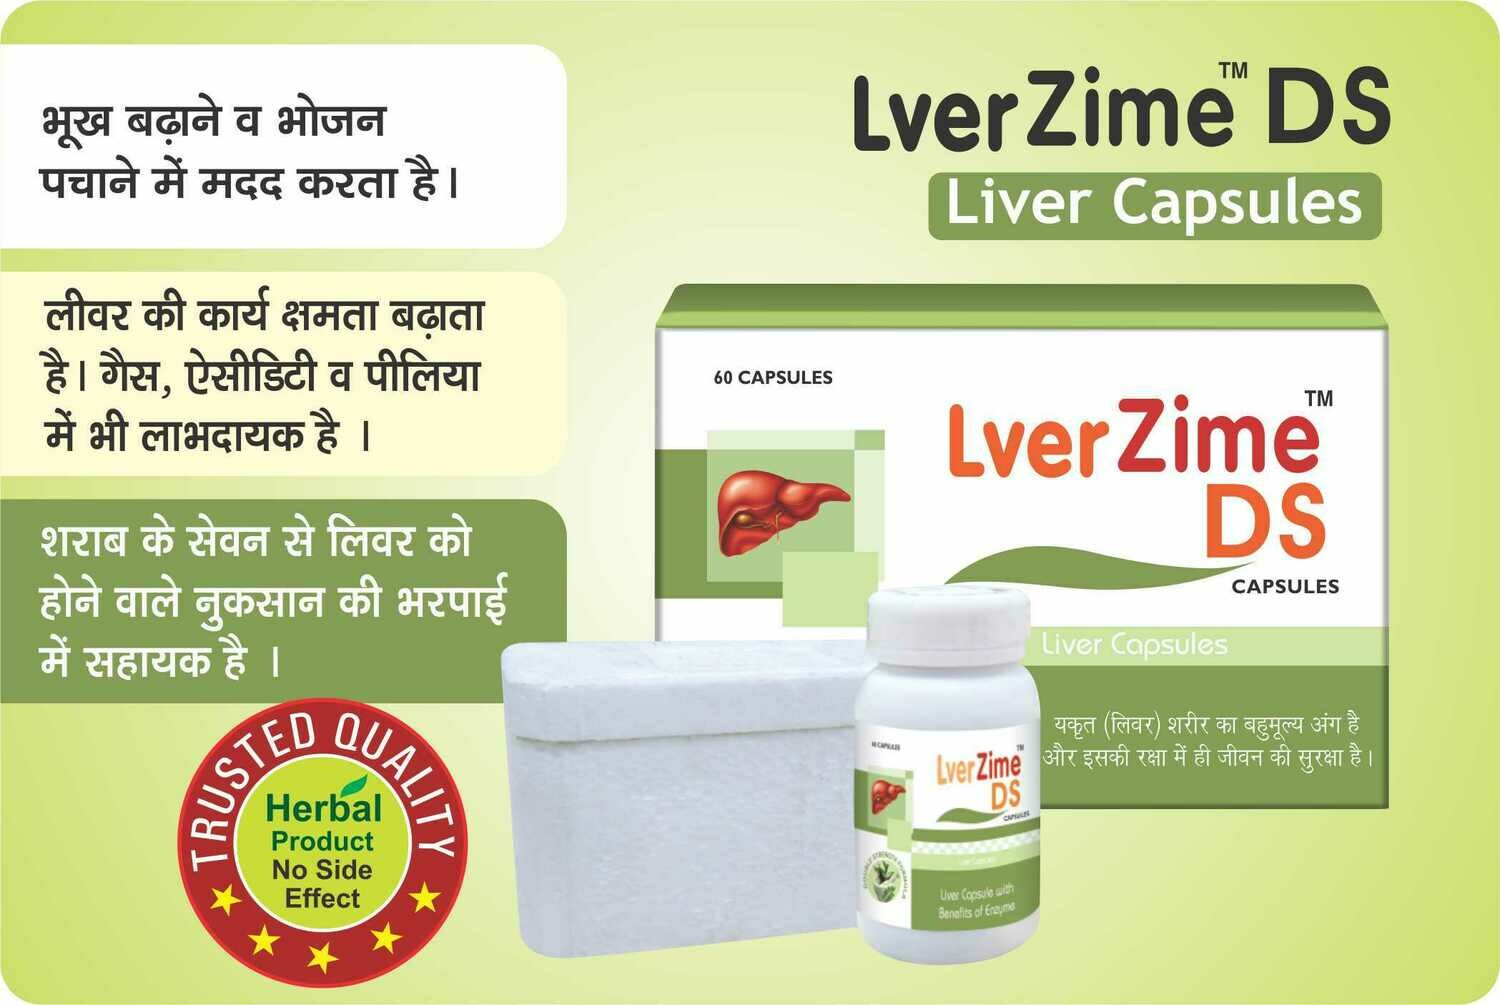 Lver Zime DS Capsules